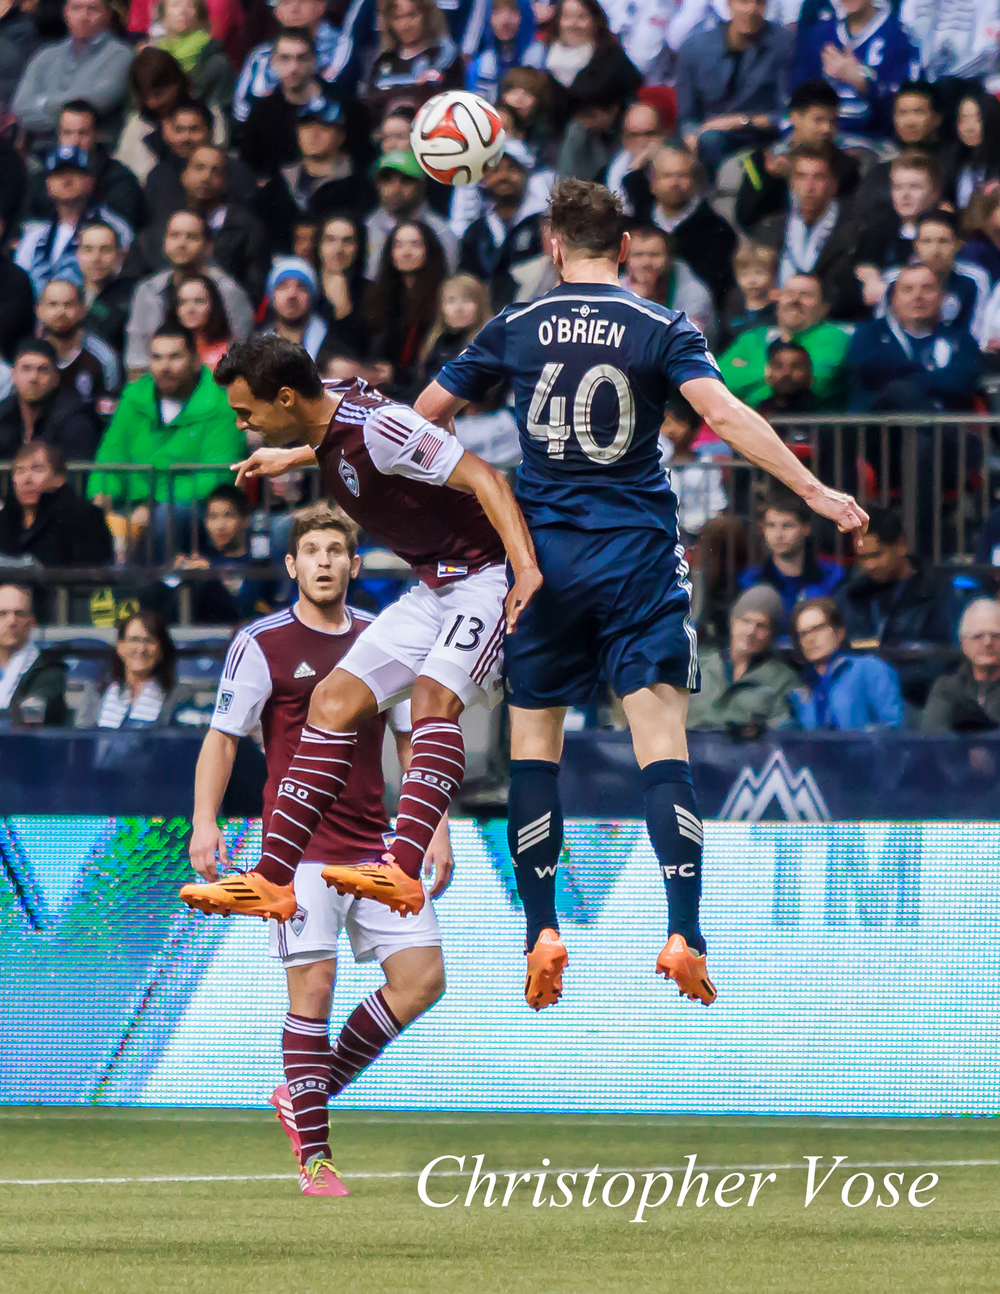 Andy O'Brien wins an aerial duel with Colorado's Kamani Hill at BC Place on 5 April 2014.